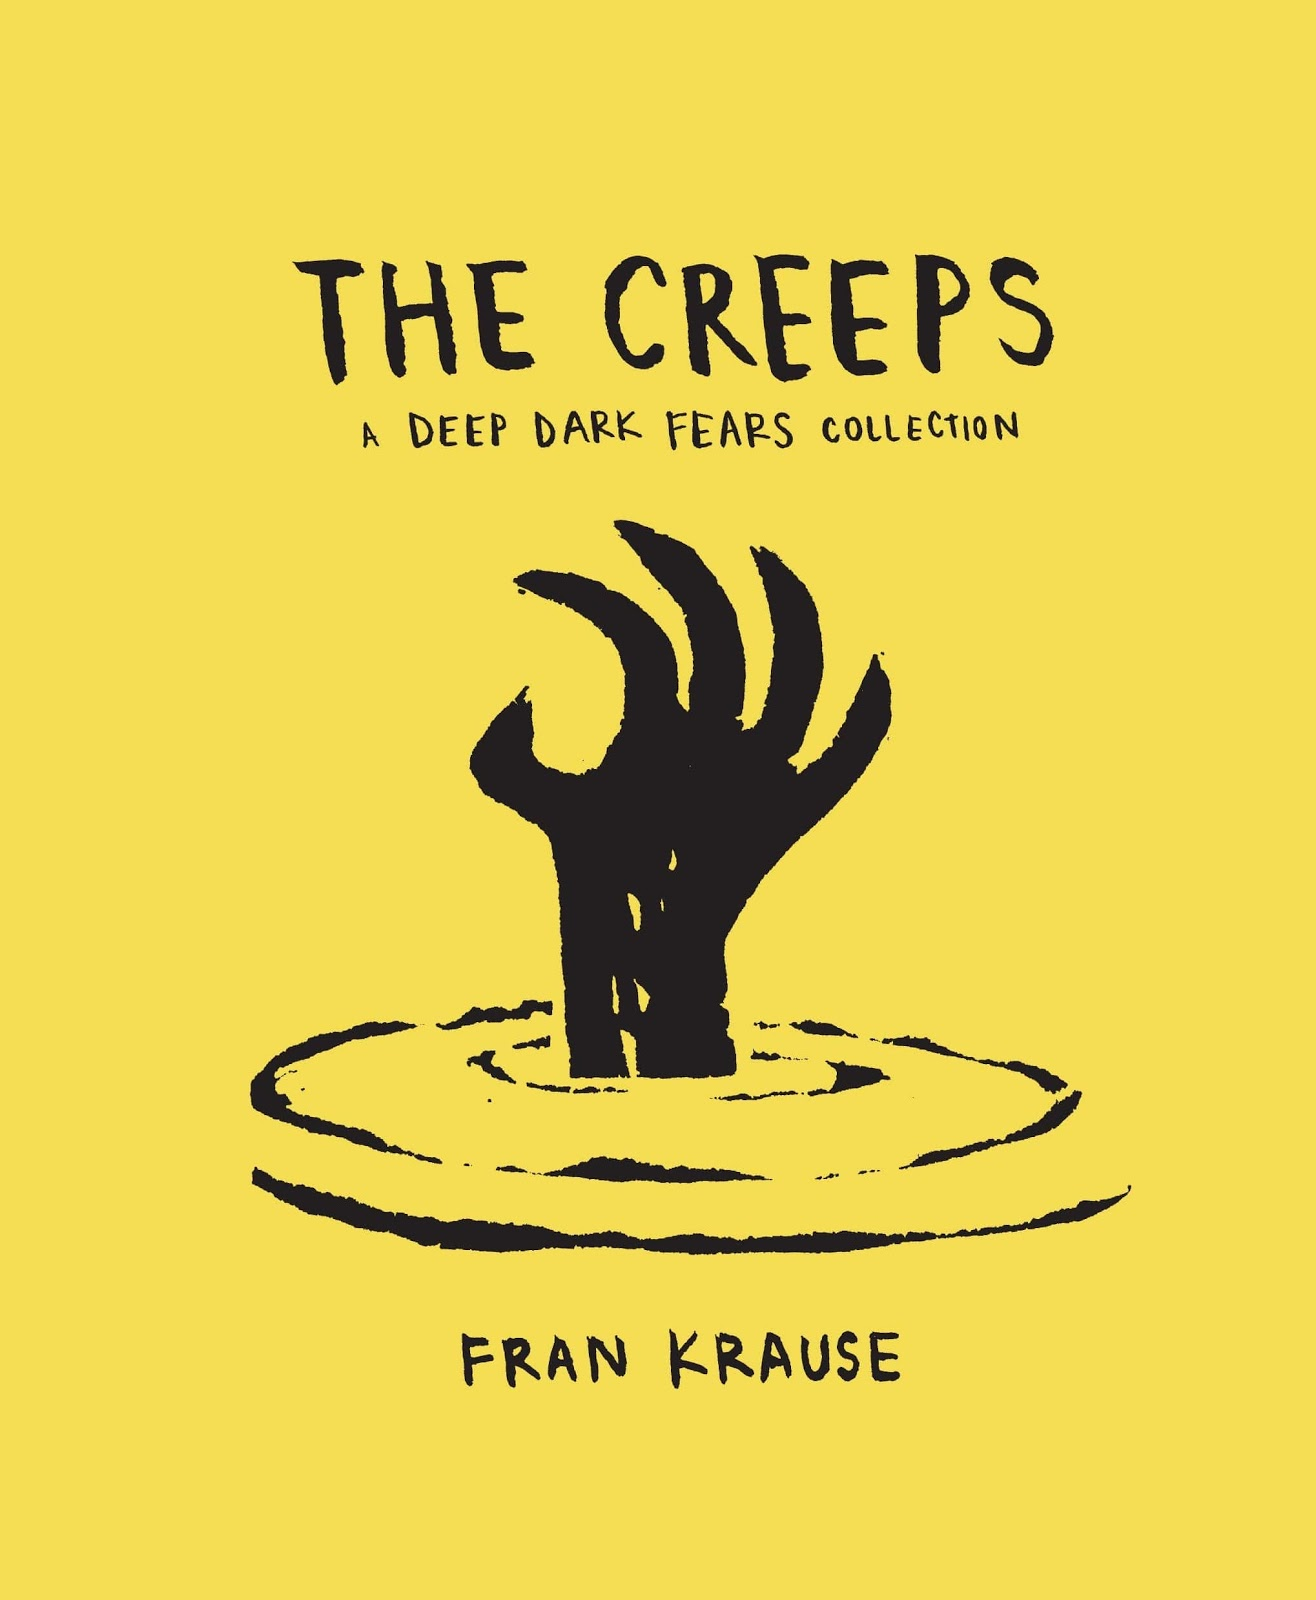 The Creeps (Deep Dark Fears Collection #2) by Fran Krause